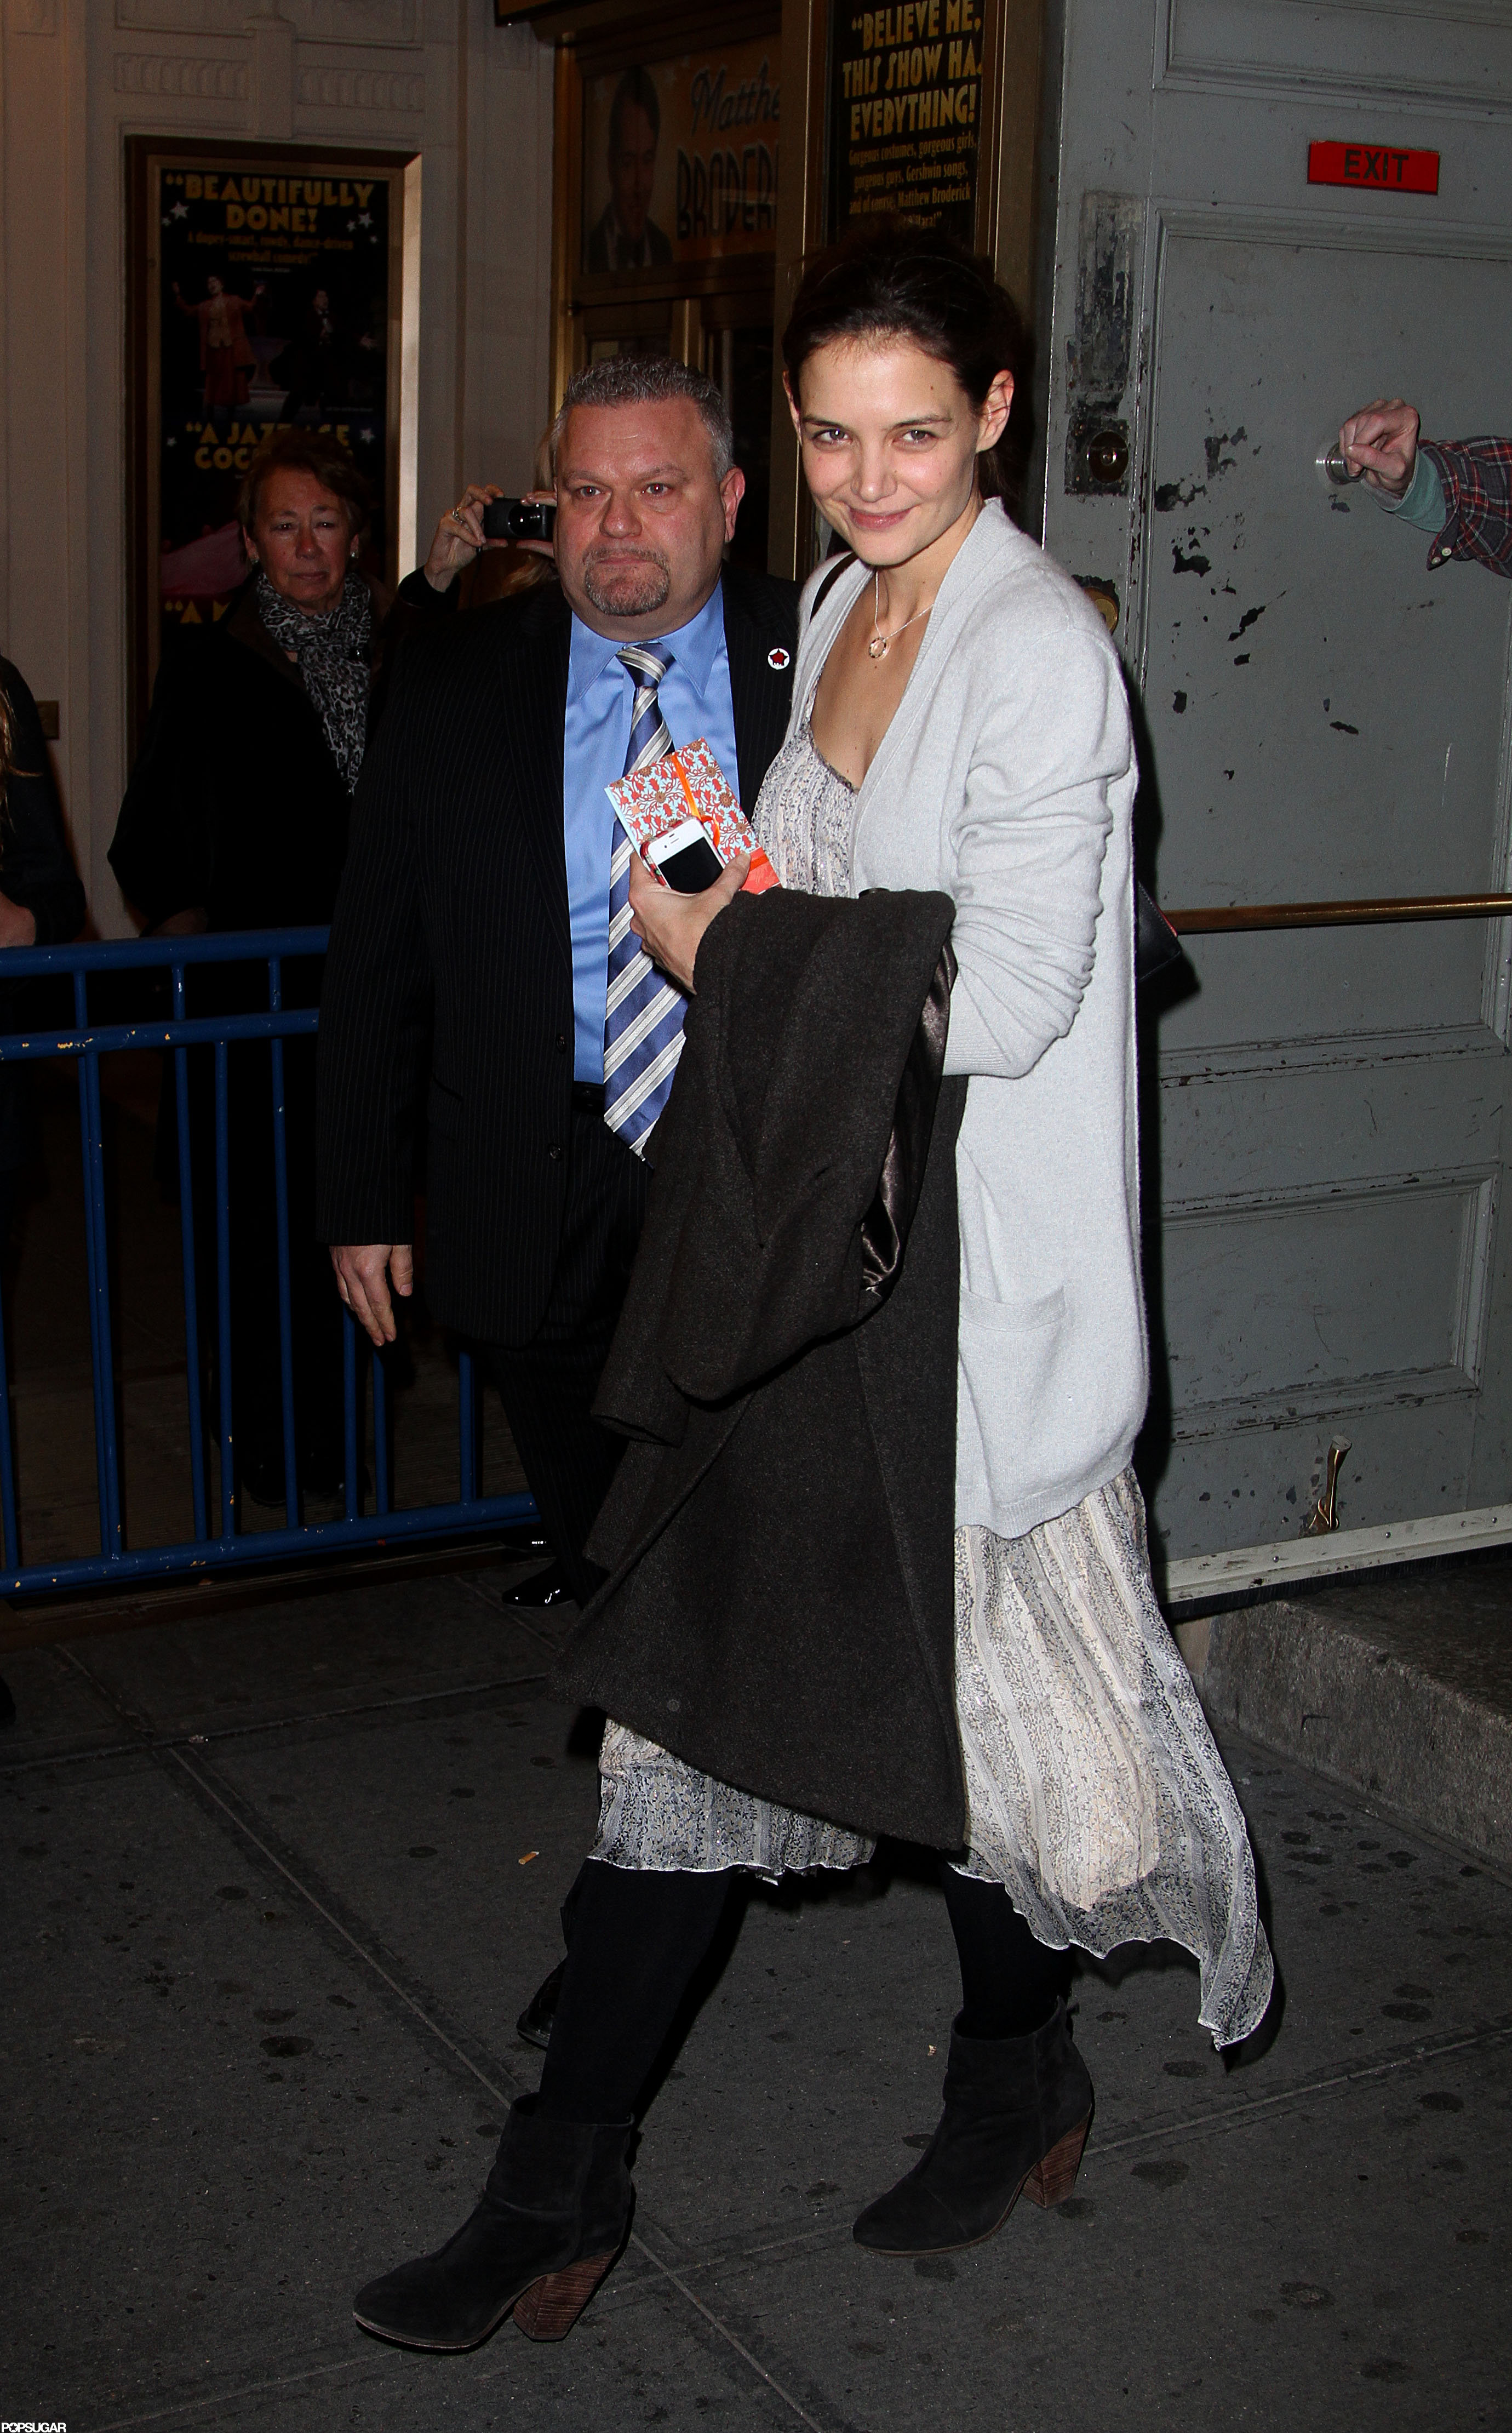 Katie Holmes smiled on her way out of her Broadway show.